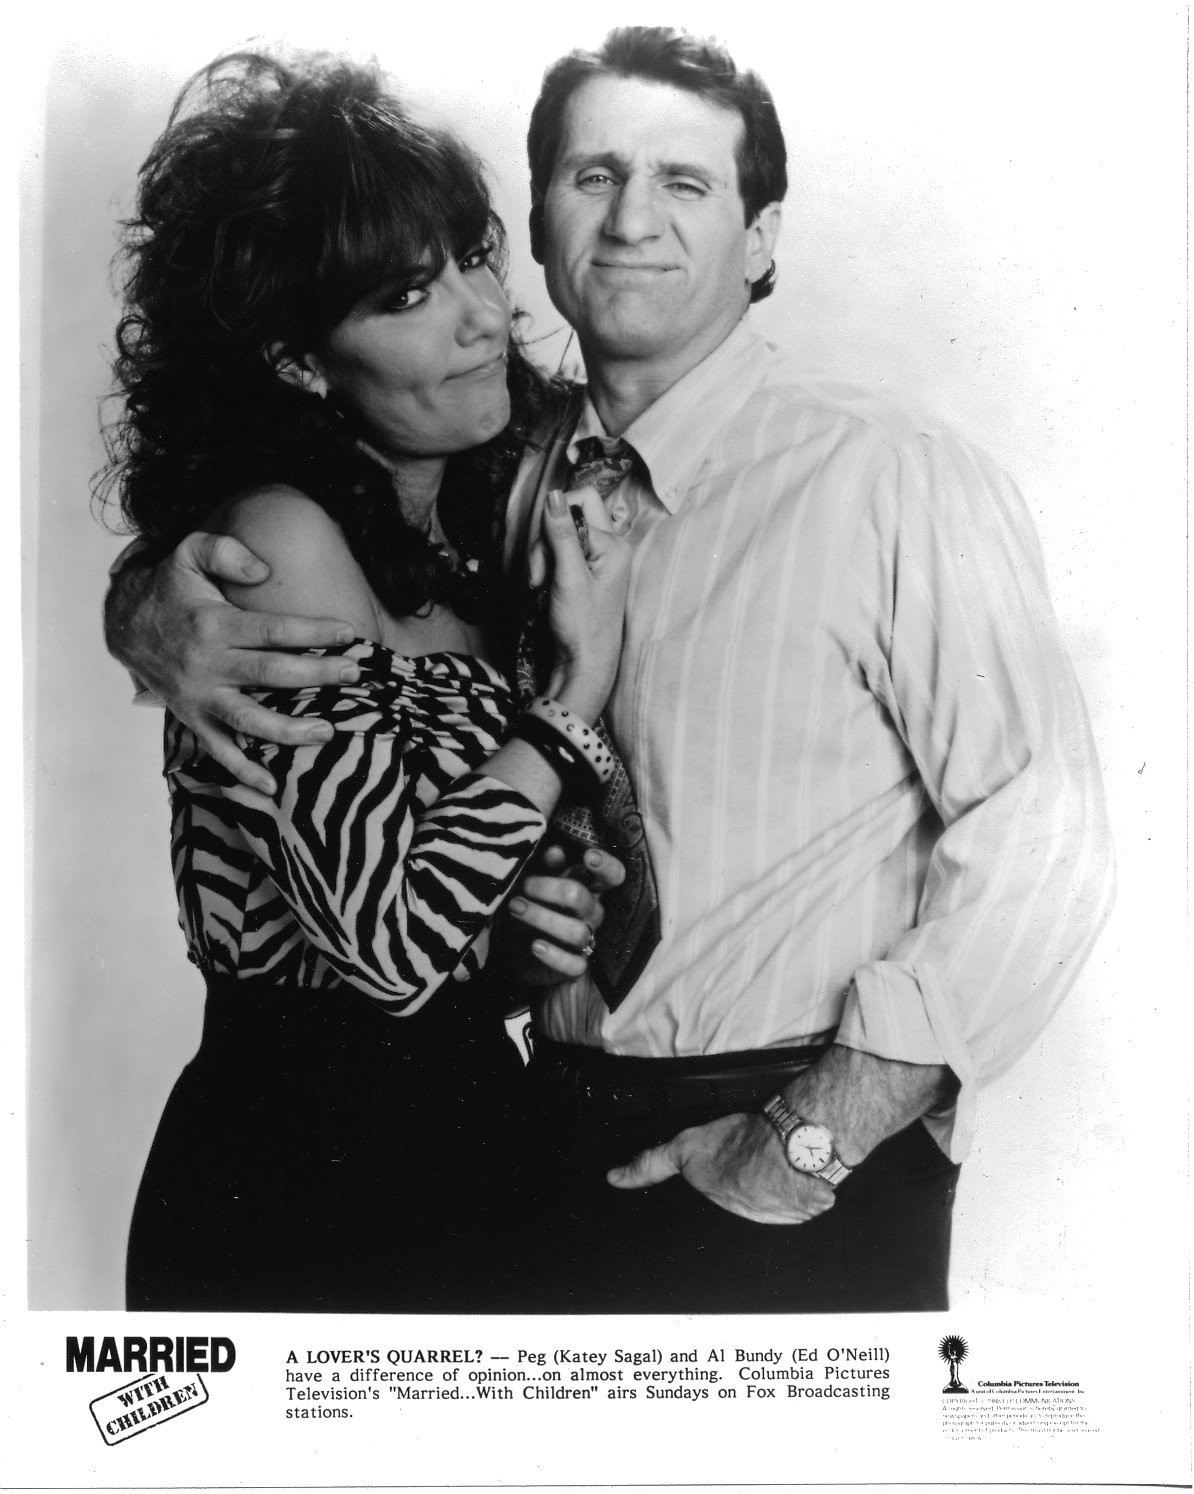 married-with-children-cast-8x10-photo-g1963